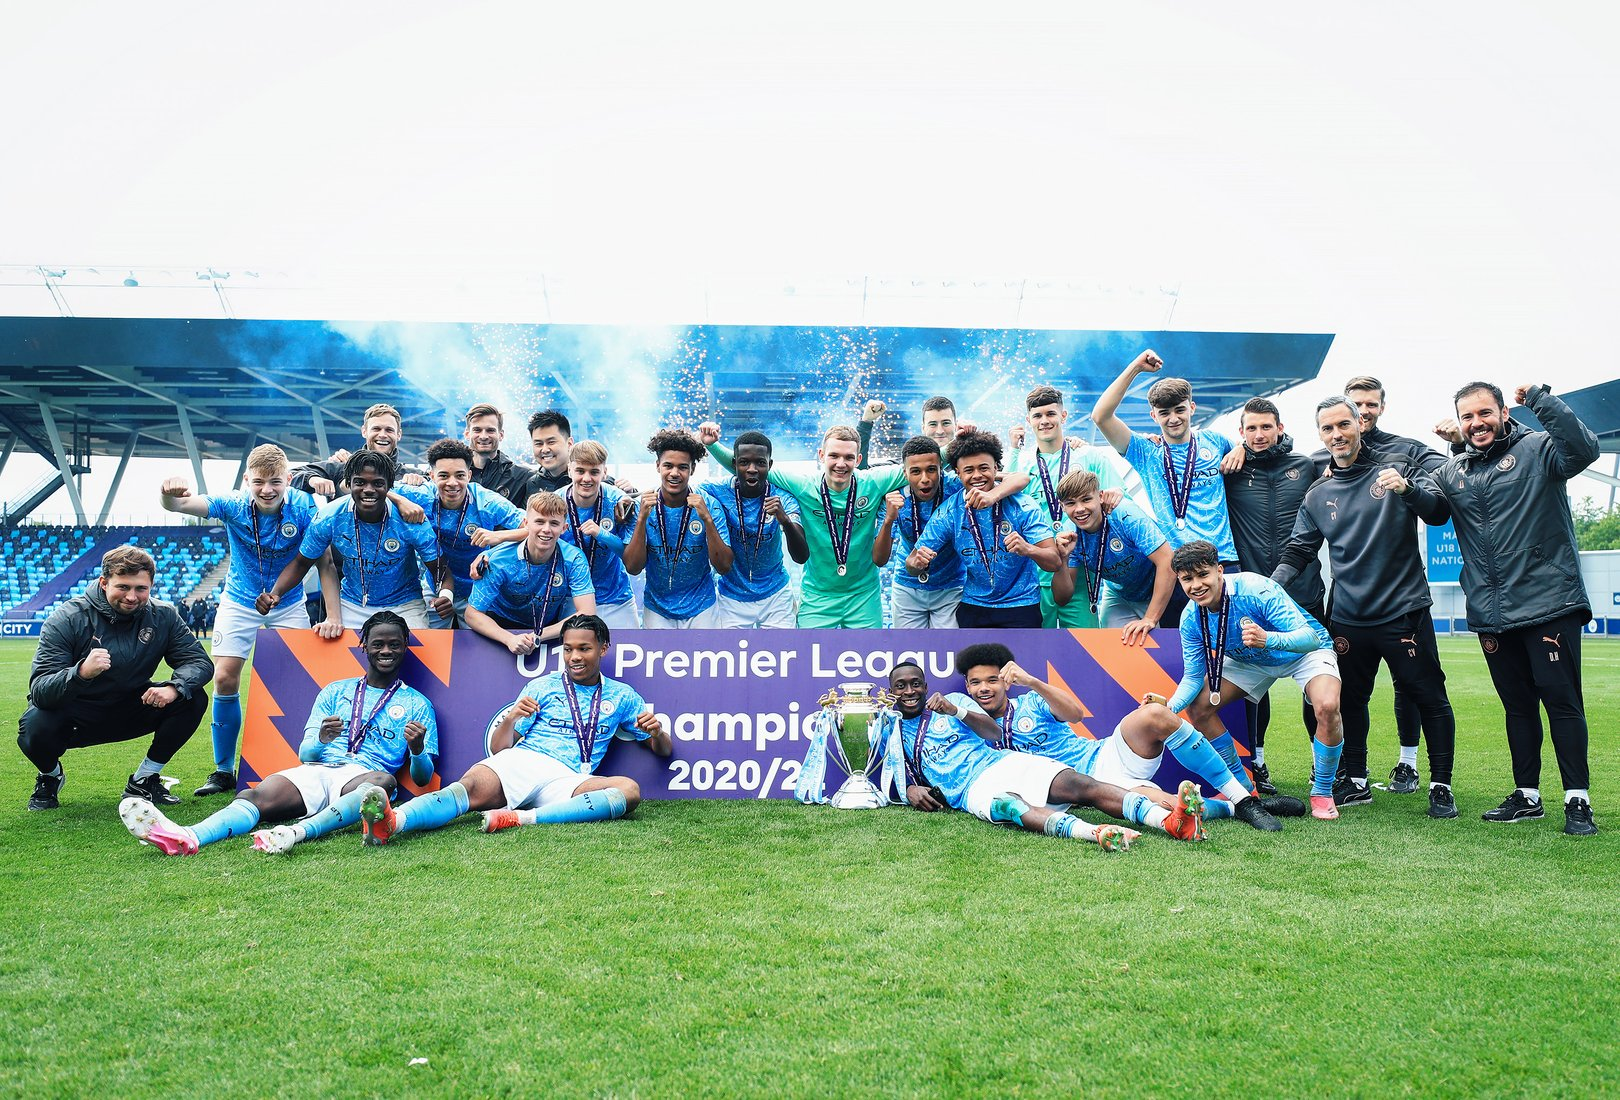 Under-18 National glory perfect way to end 'amazing' season, says Vicens